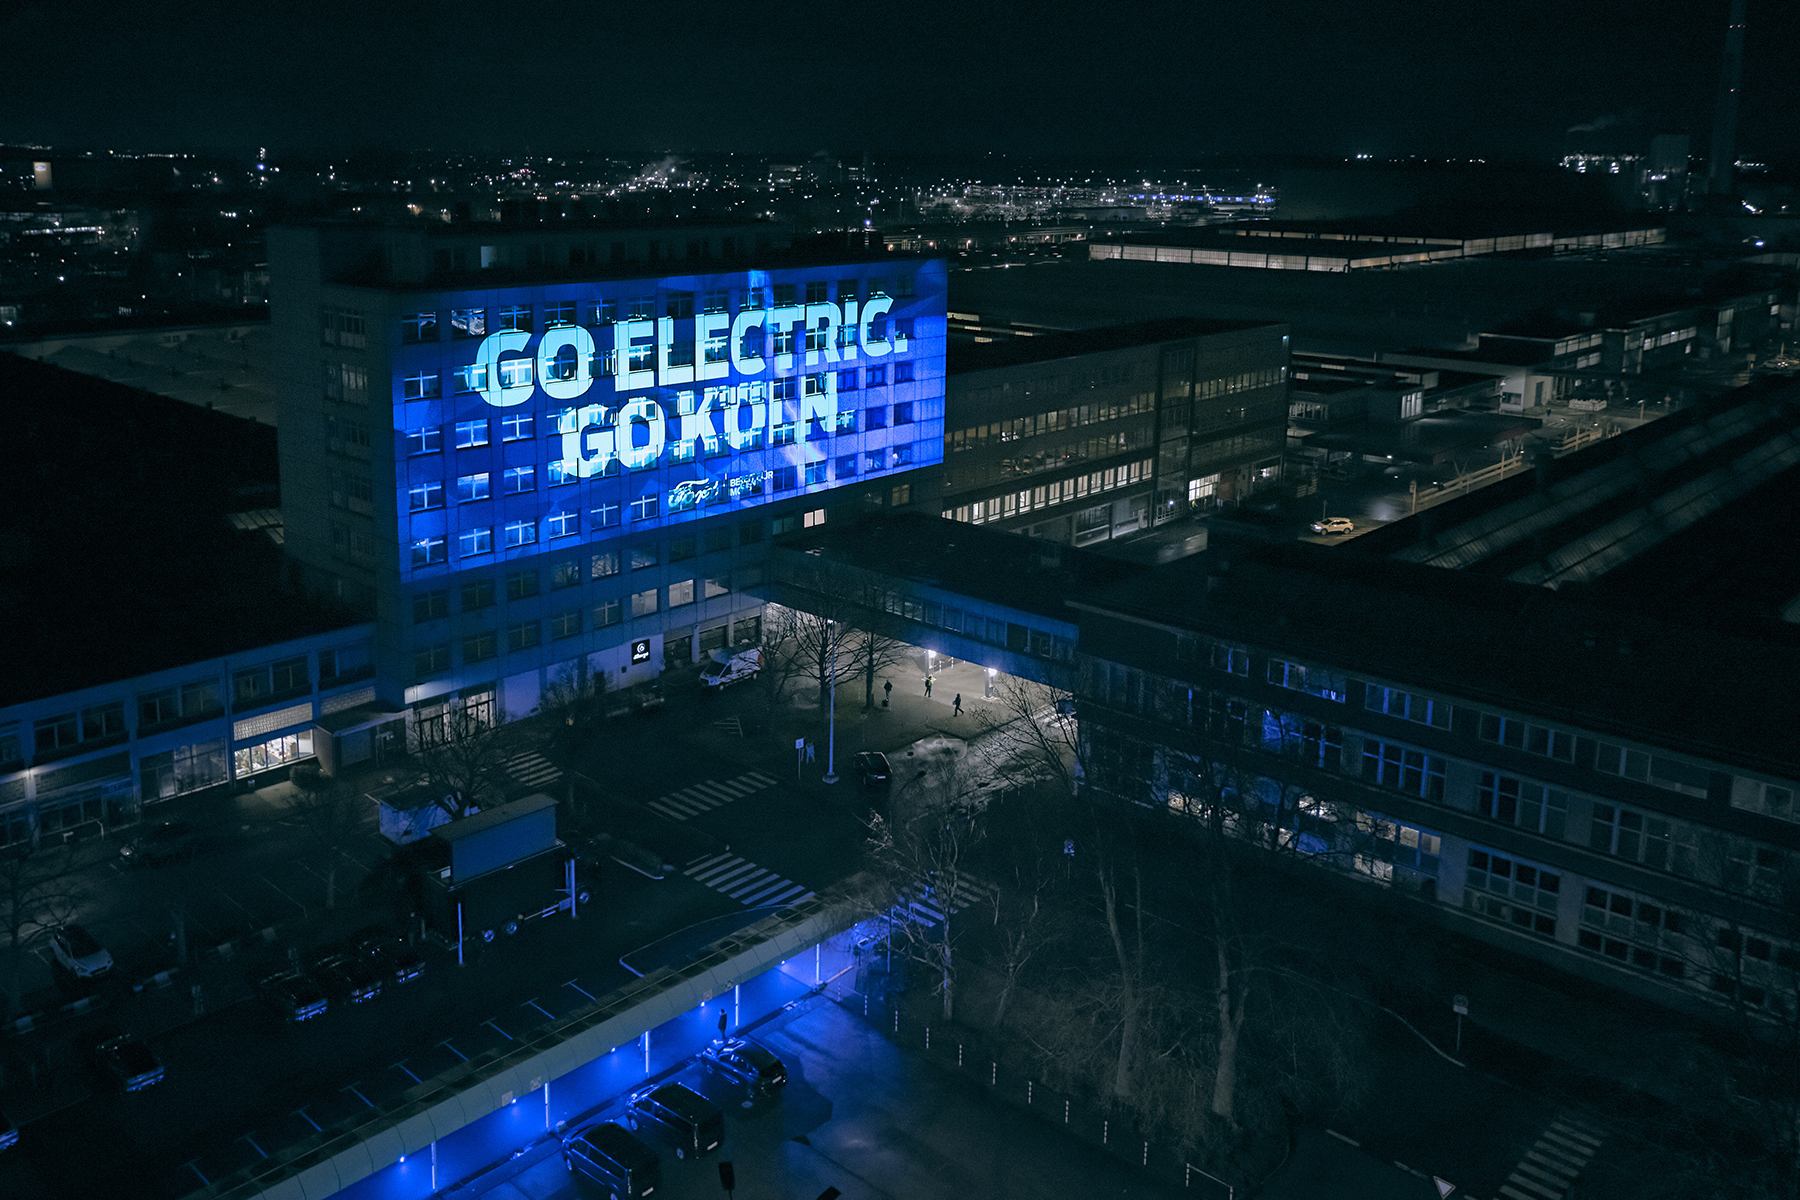 Shift towards zero-emission and digital mobility supports Green Deal objectives